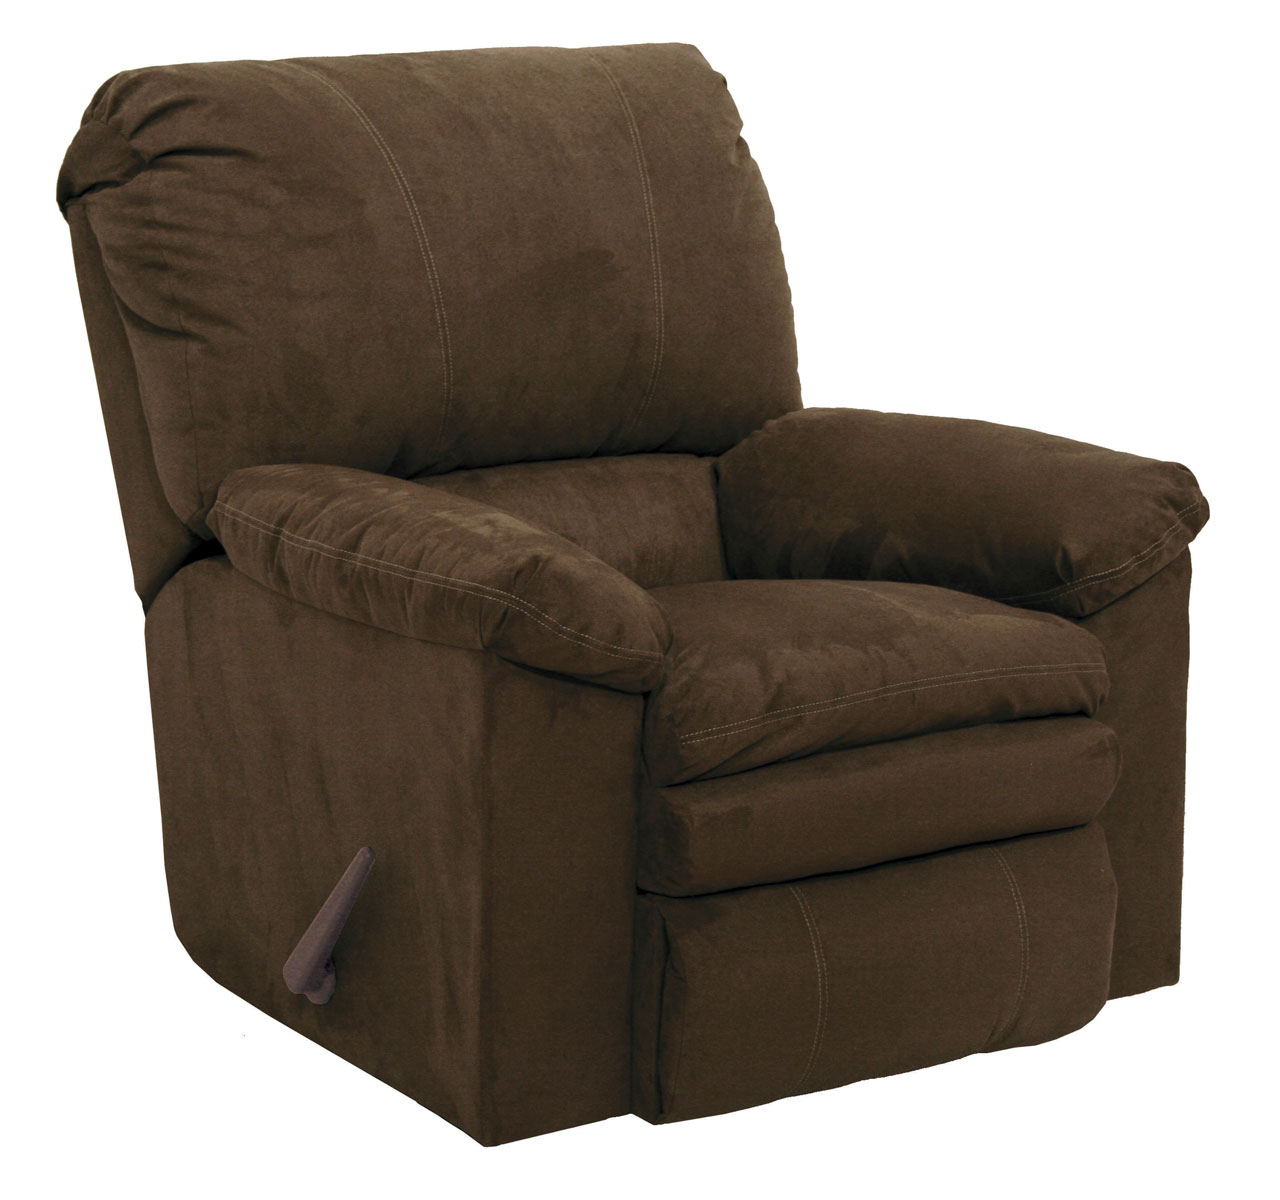 CatNapper Impulse Power Rocker Recliner - Godiva